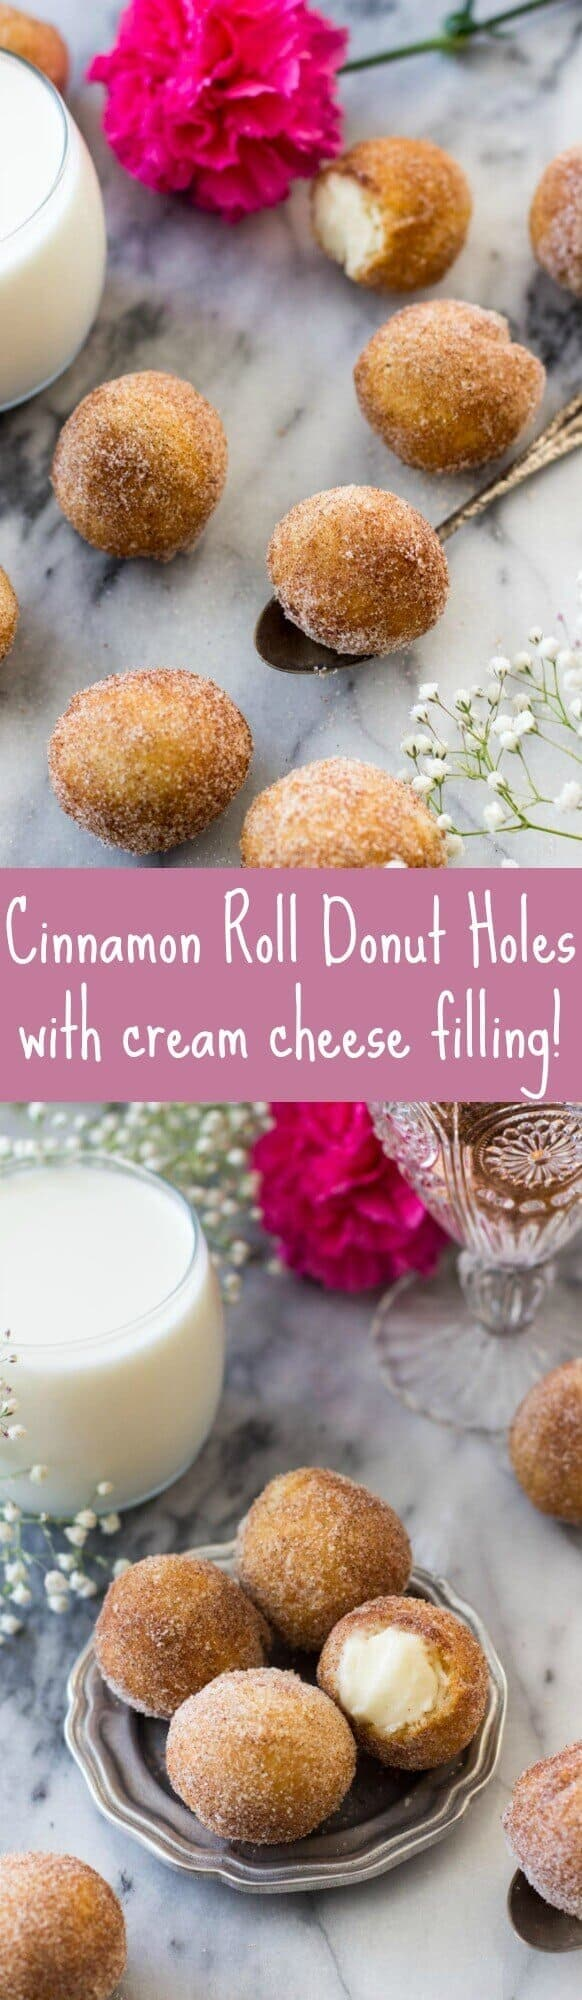 Inside out cinnamon roll donut holes - with cream cheese filling!